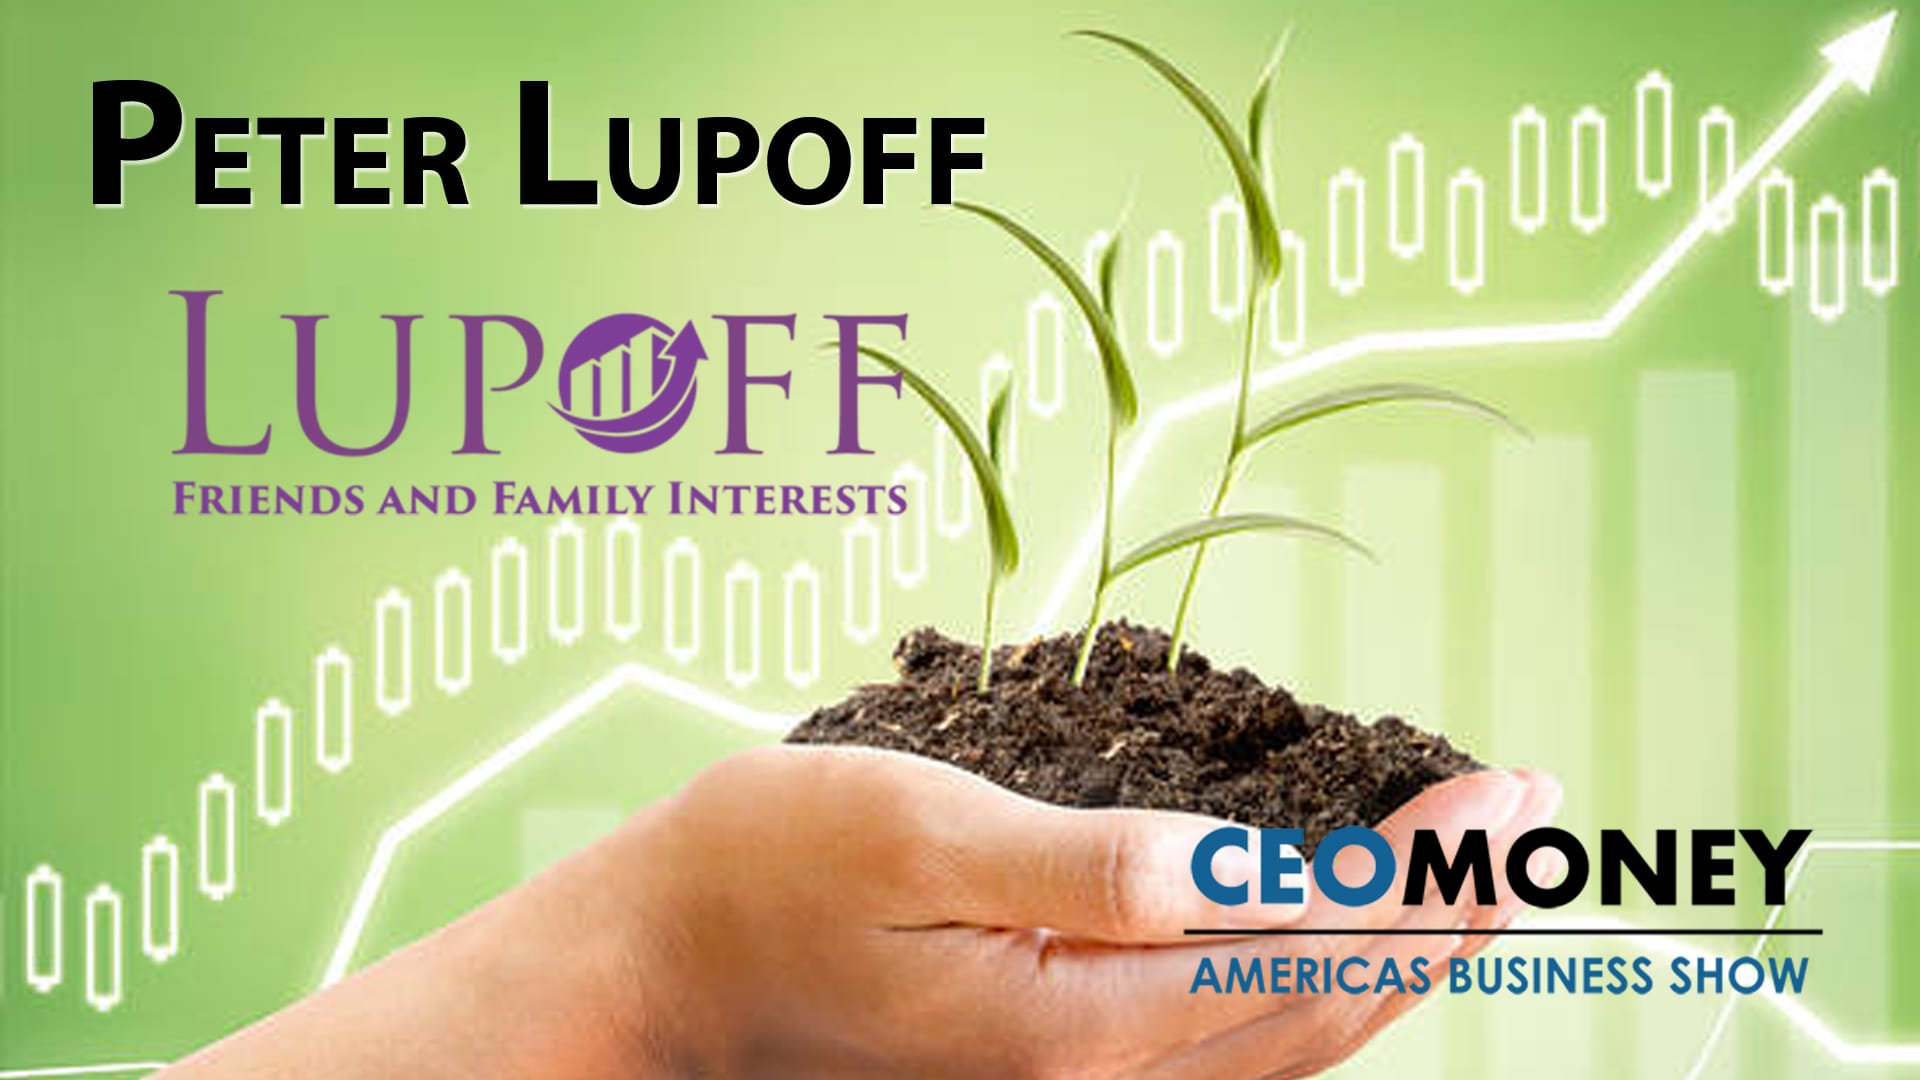 Peter Lupoff on why impact investing is becoming important to mainstream investors and funds